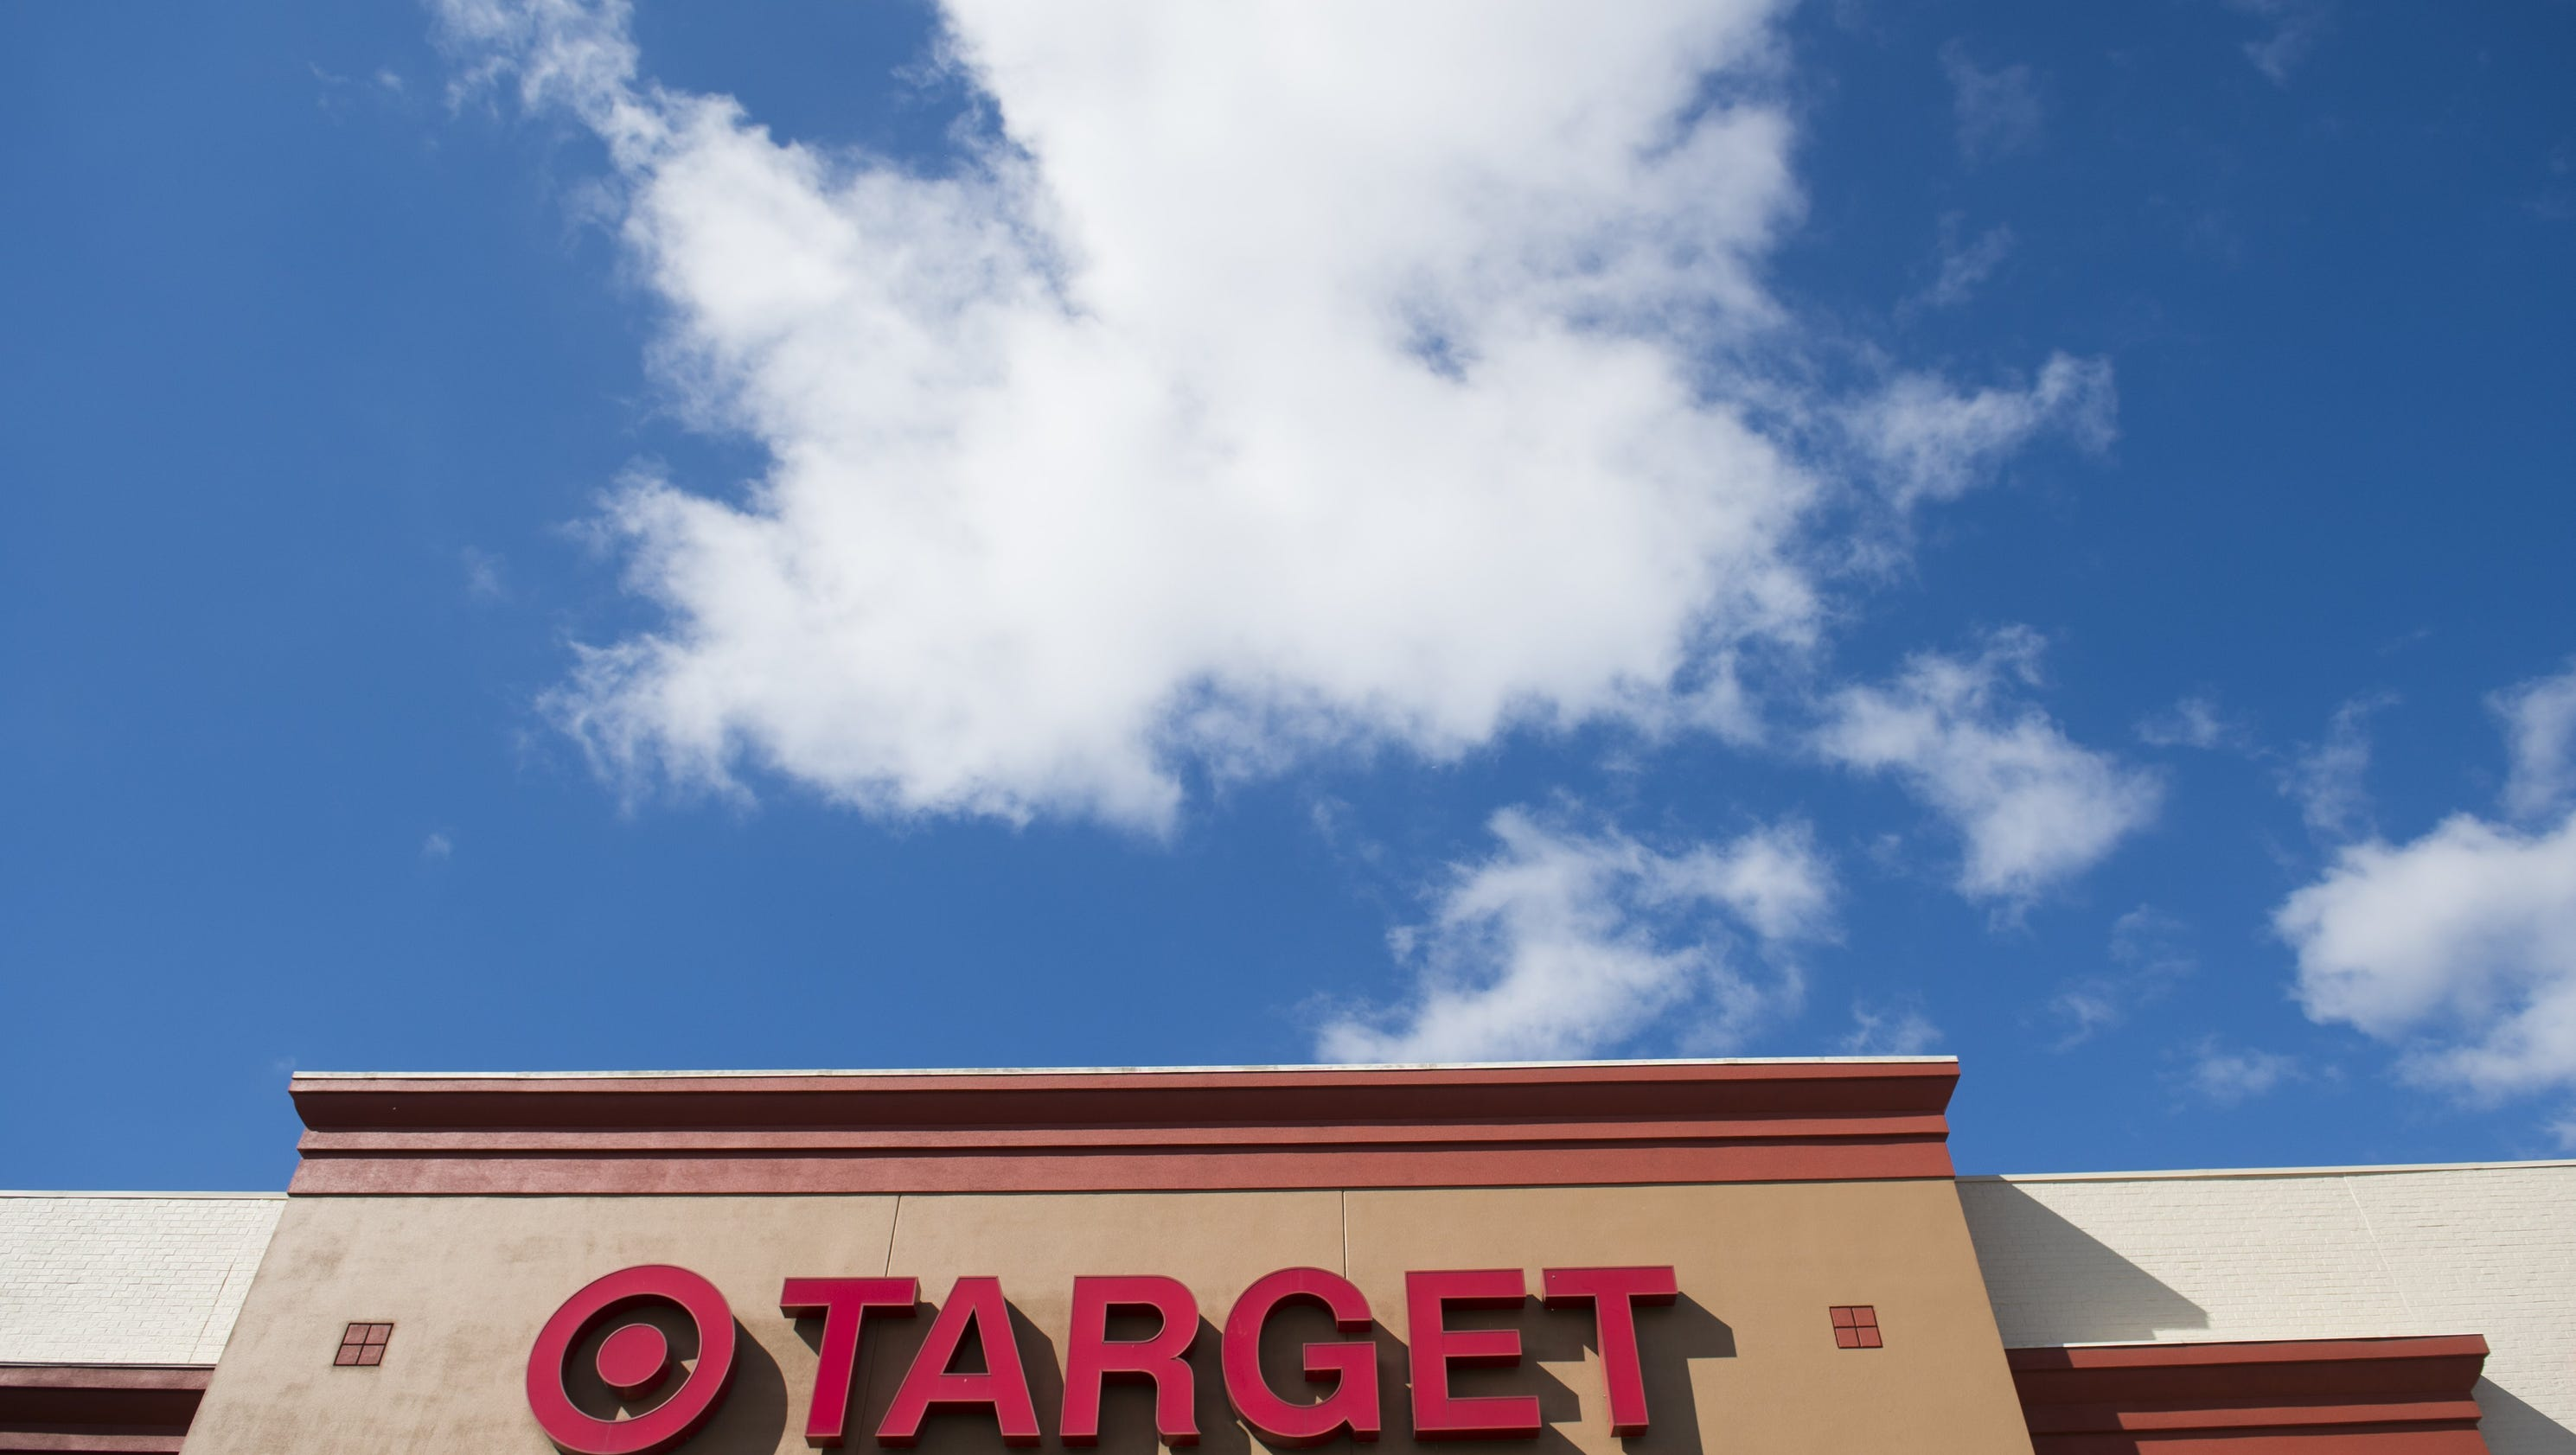 Target Wedding Registry: Target's Wedding Registry Now Offers Honeymoon Options As Well